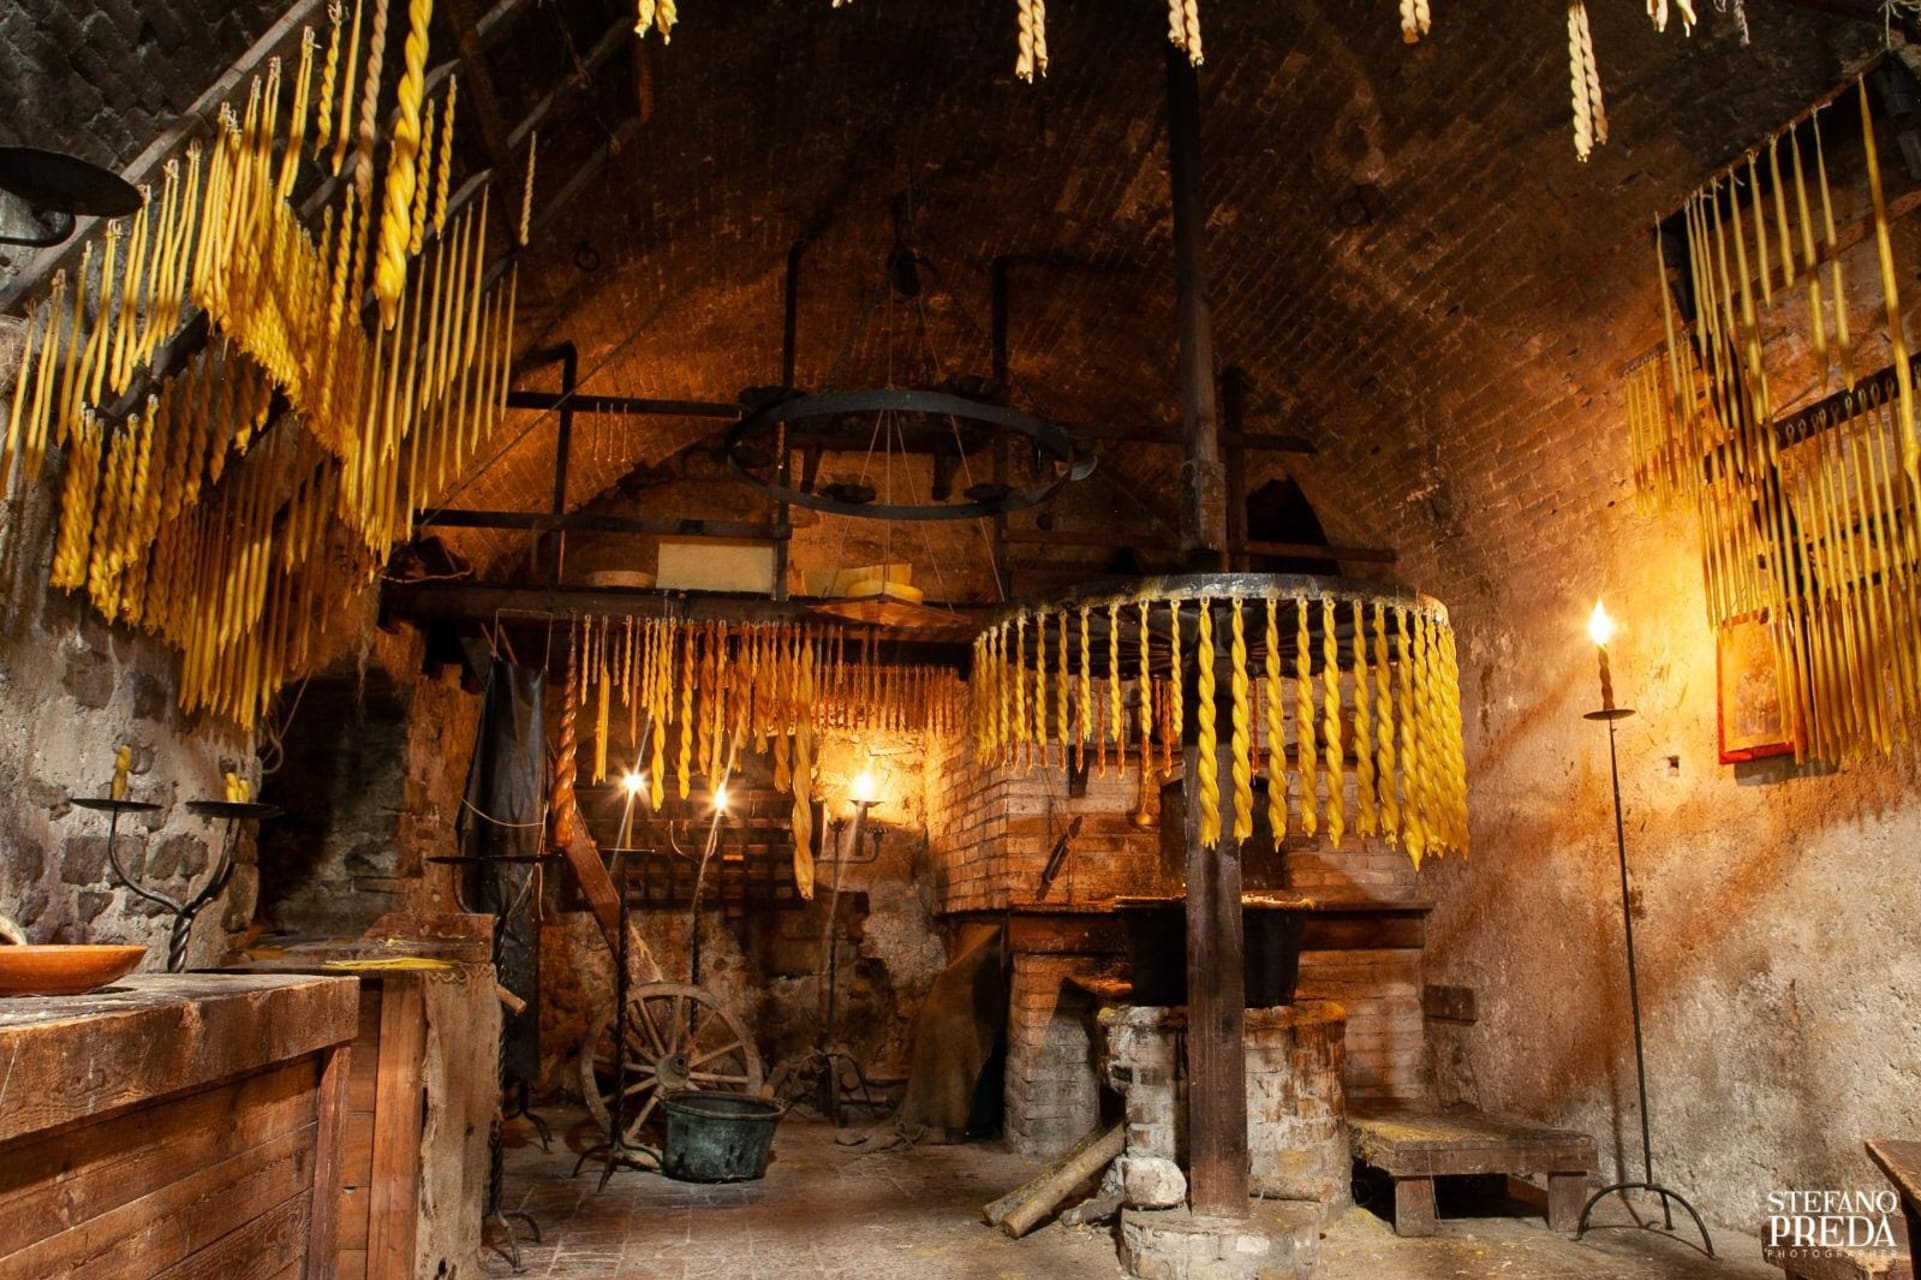 Umbria -  Bevagna - Candle Making in the Middle Ages